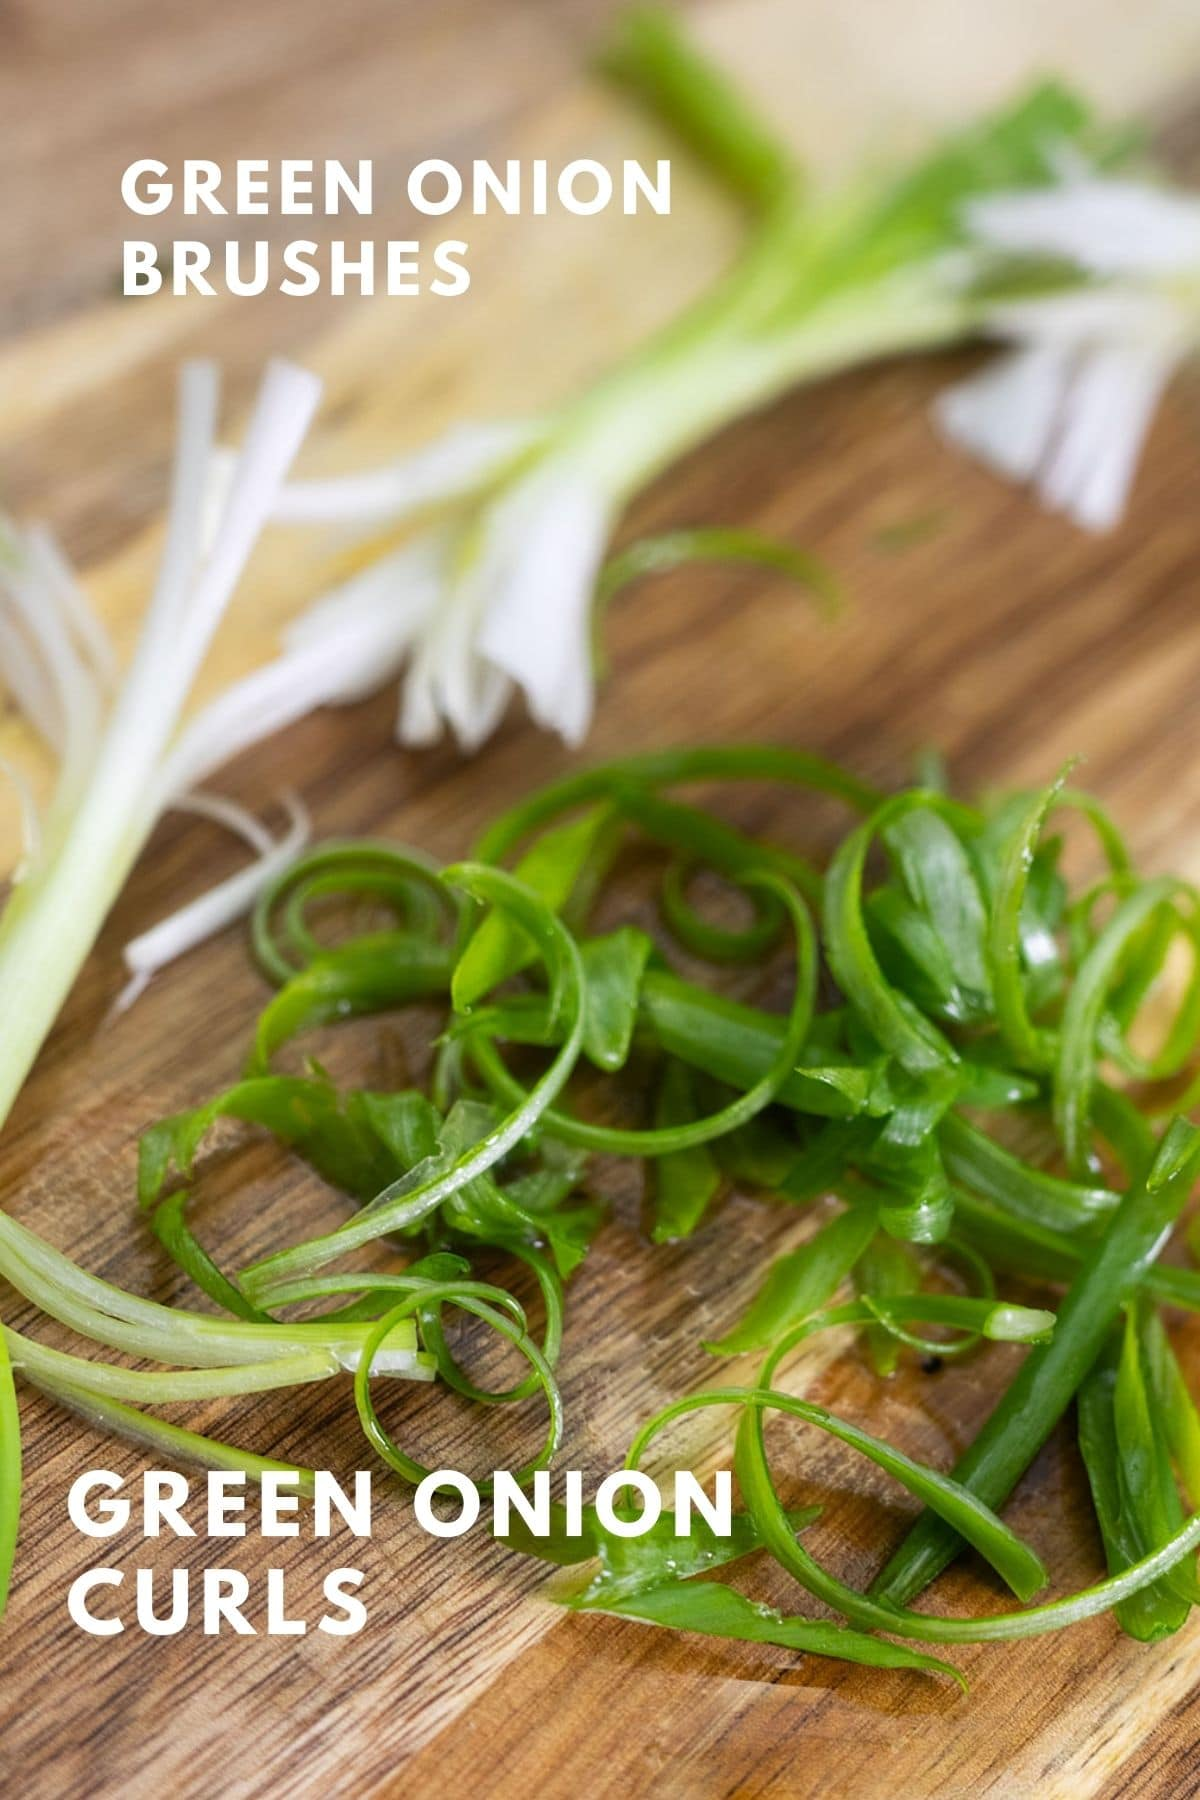 green onion brushes and curls on cutting board